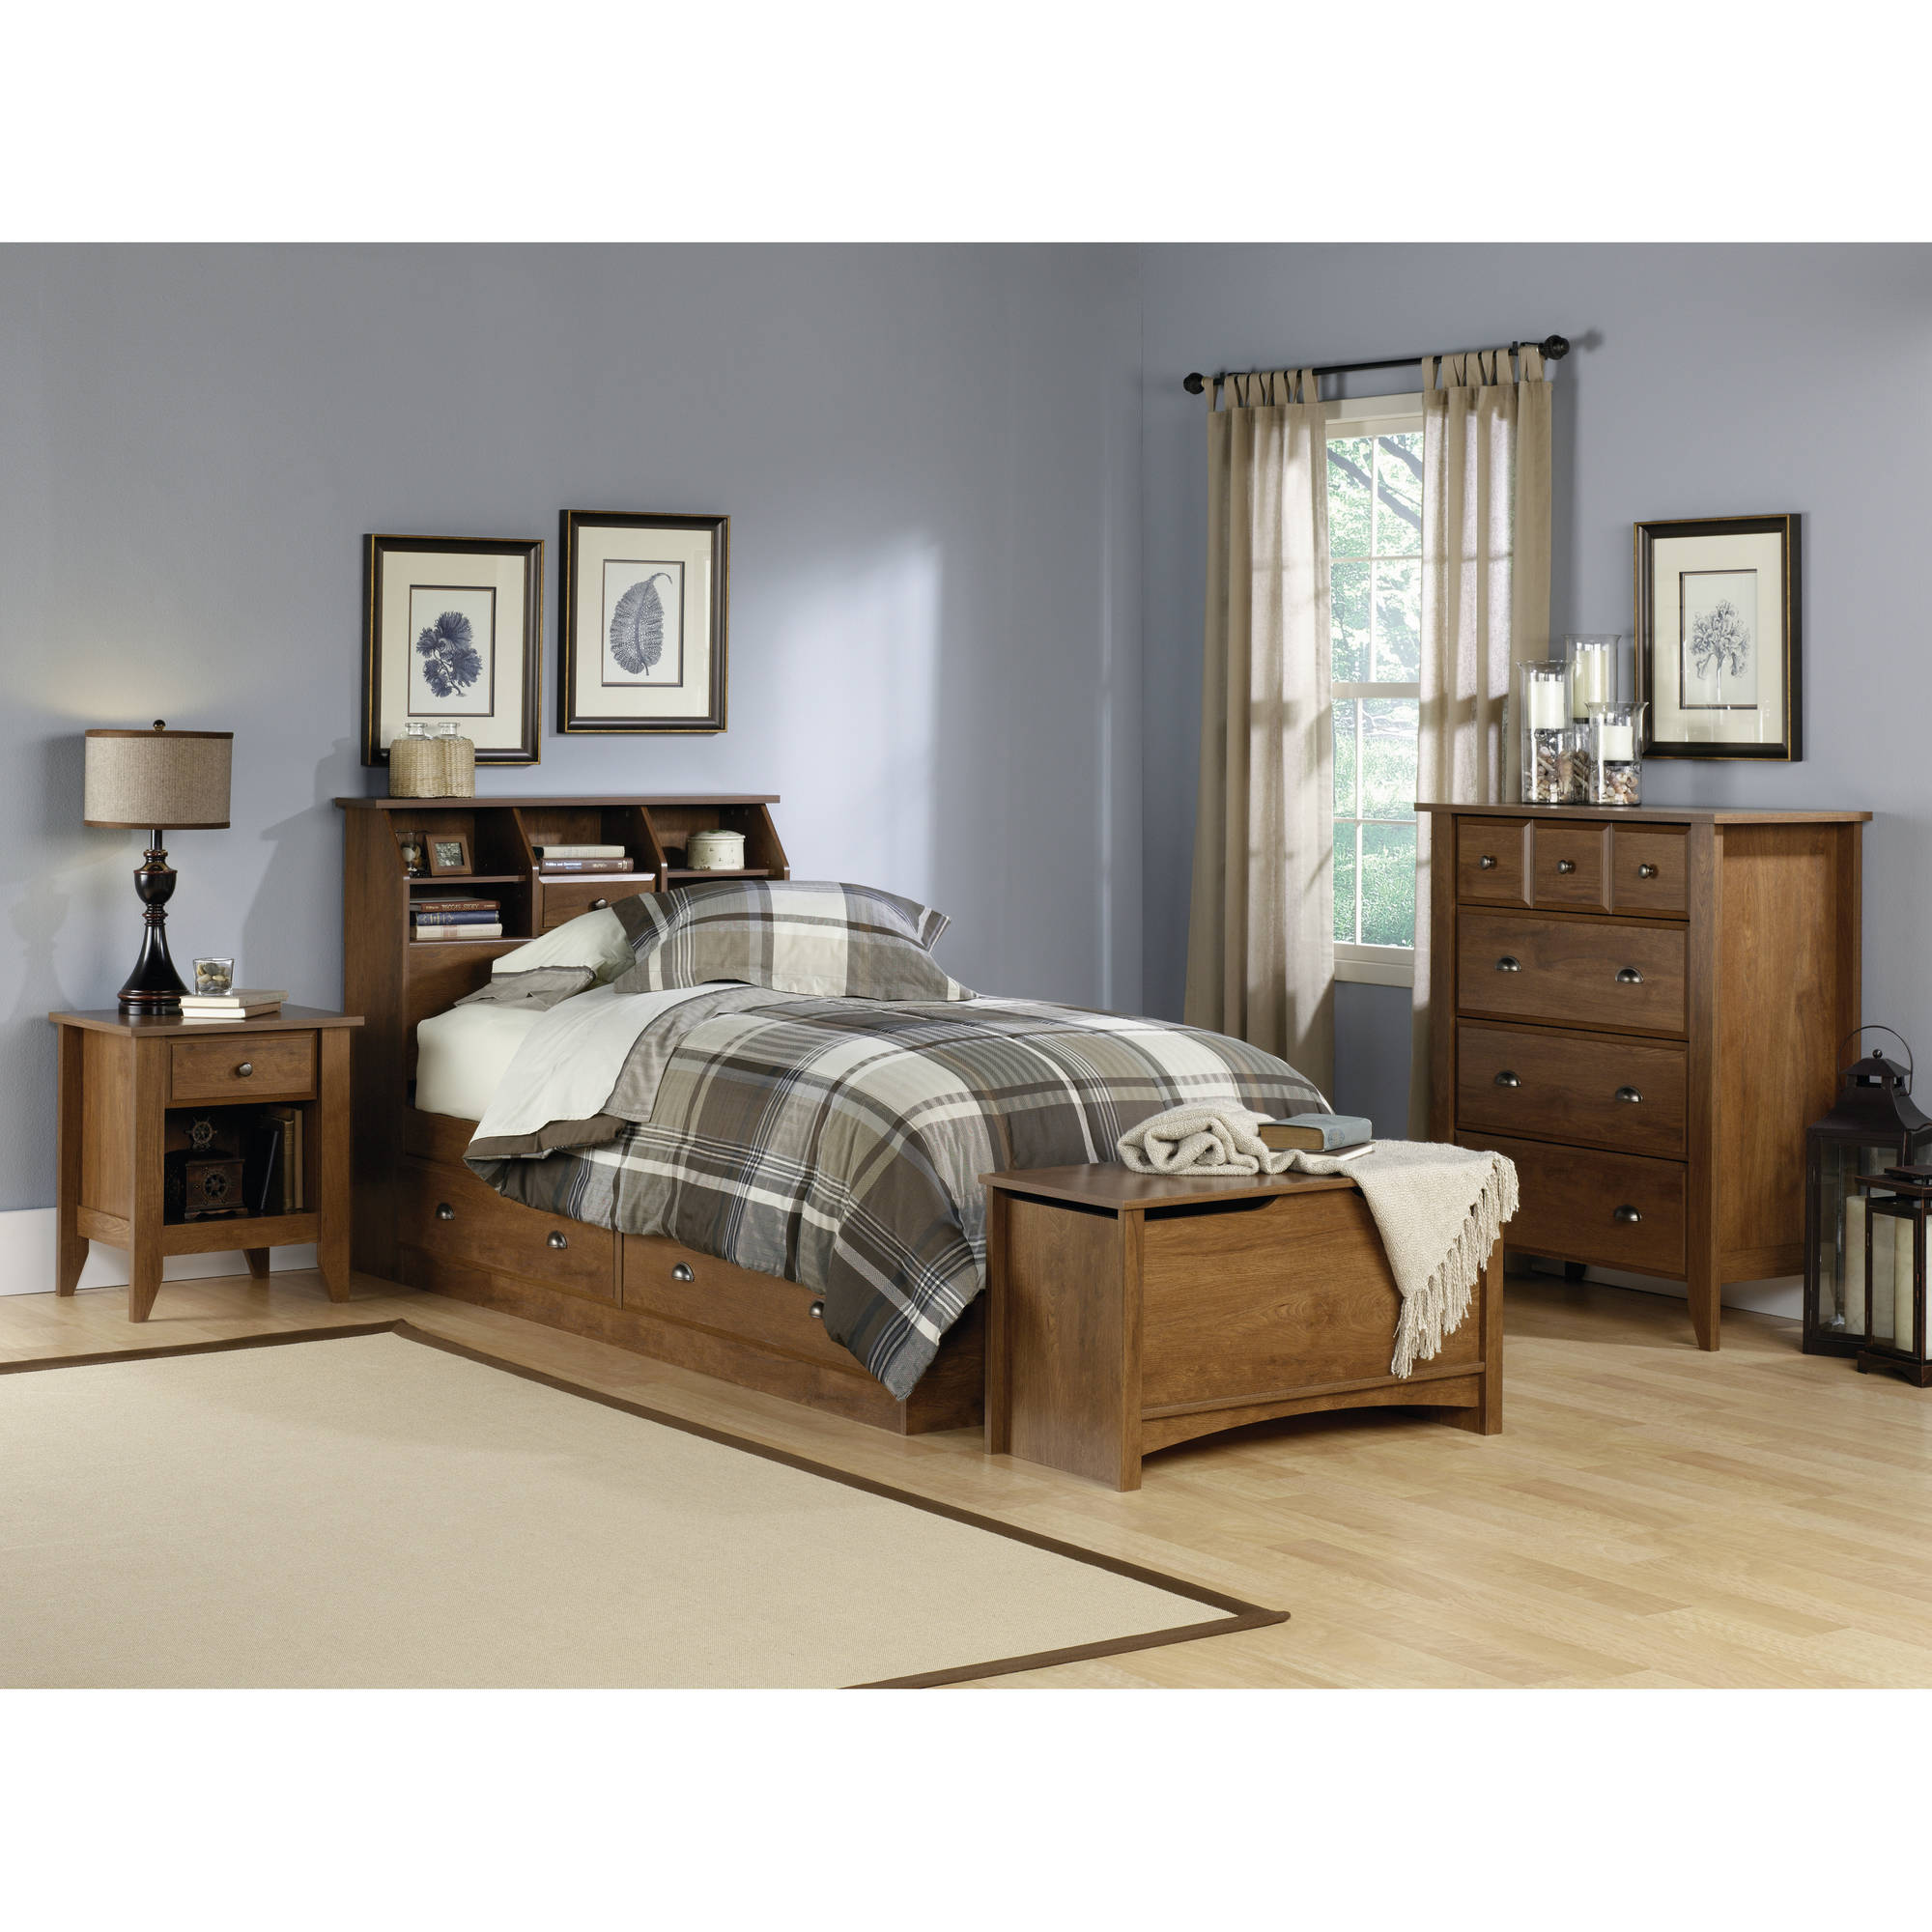 Sauder Shoal Creek Oiled Oak Furniture Collection